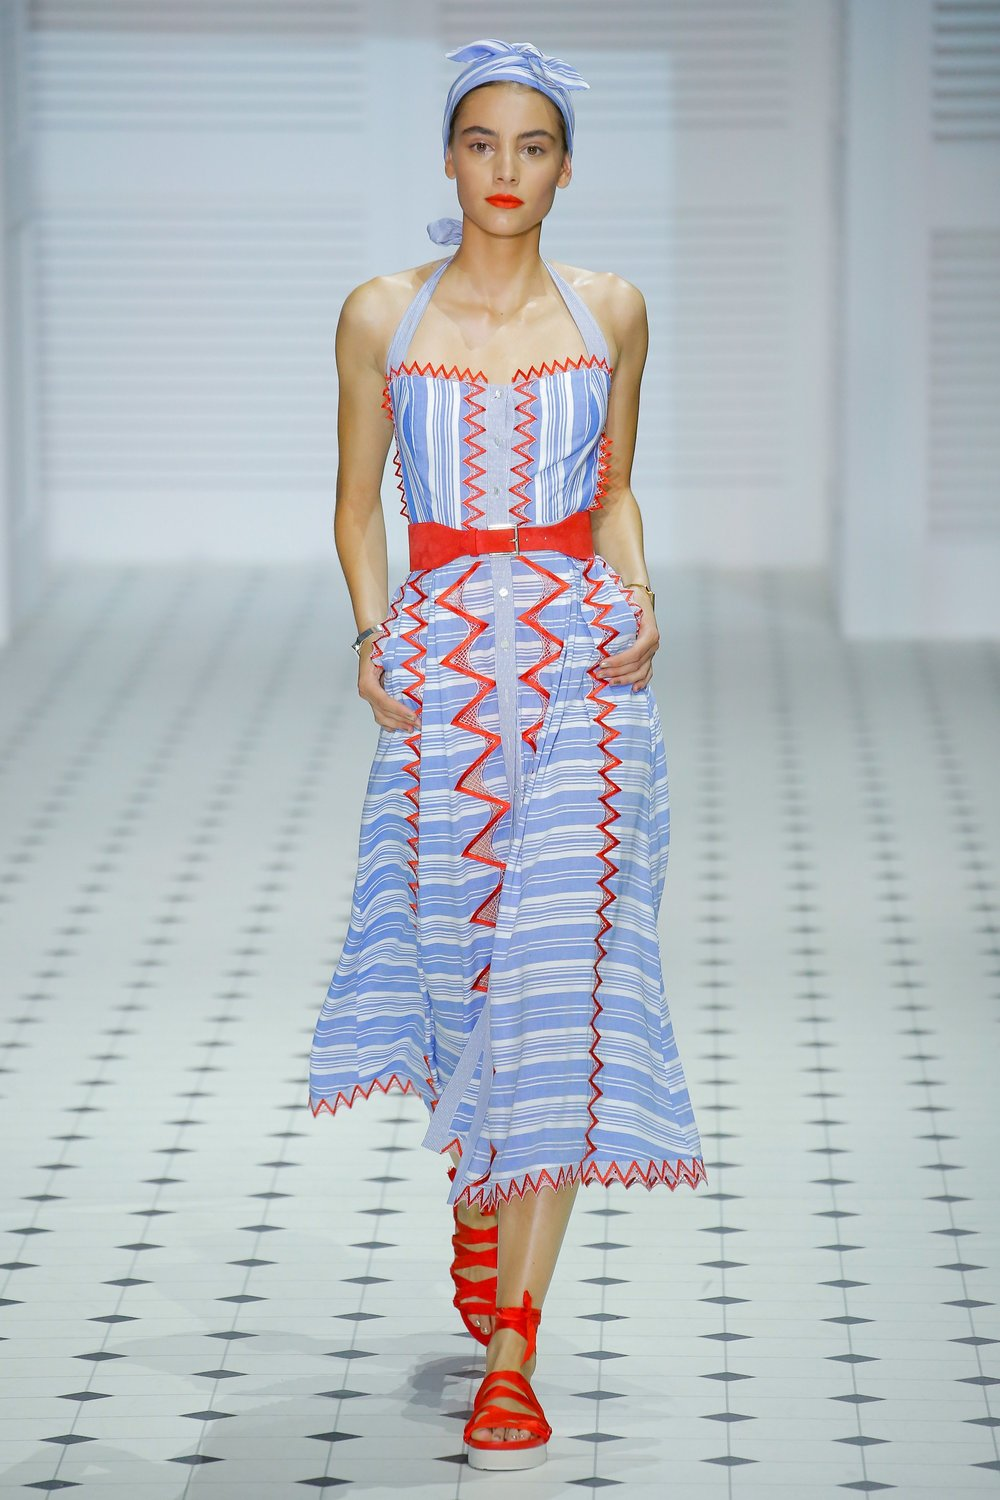 TEMPERLEY LONDON SS18 - CAROLINE ISSA